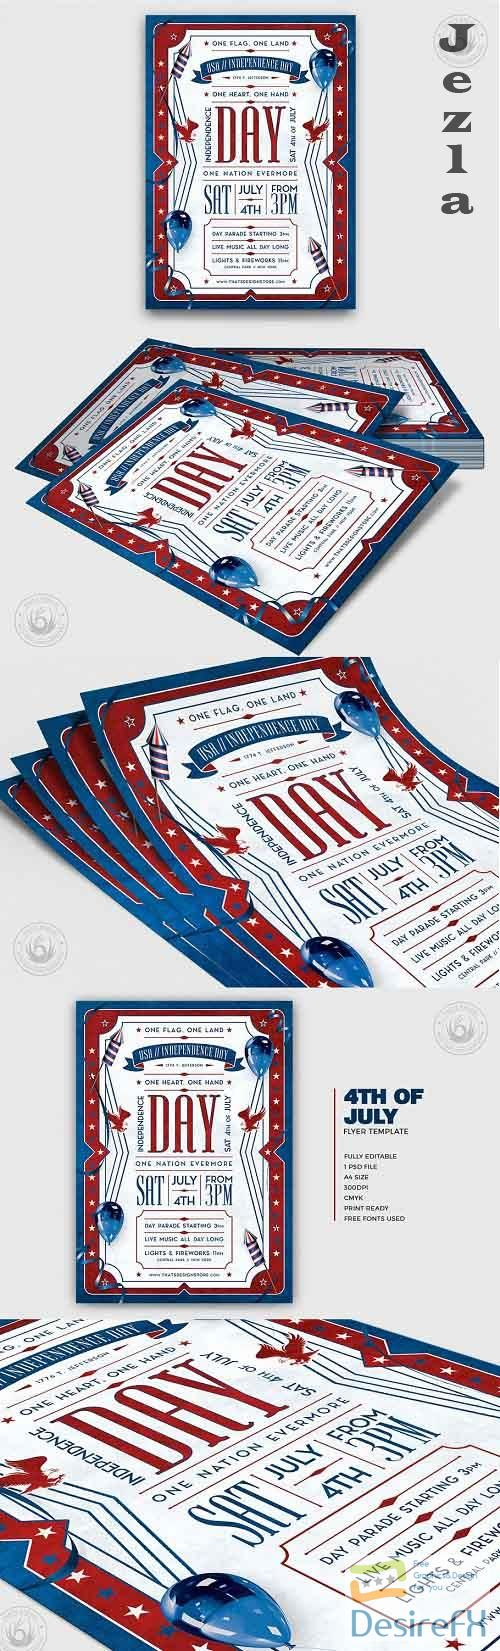 Independence Day Flyer Template V4 - 4996081